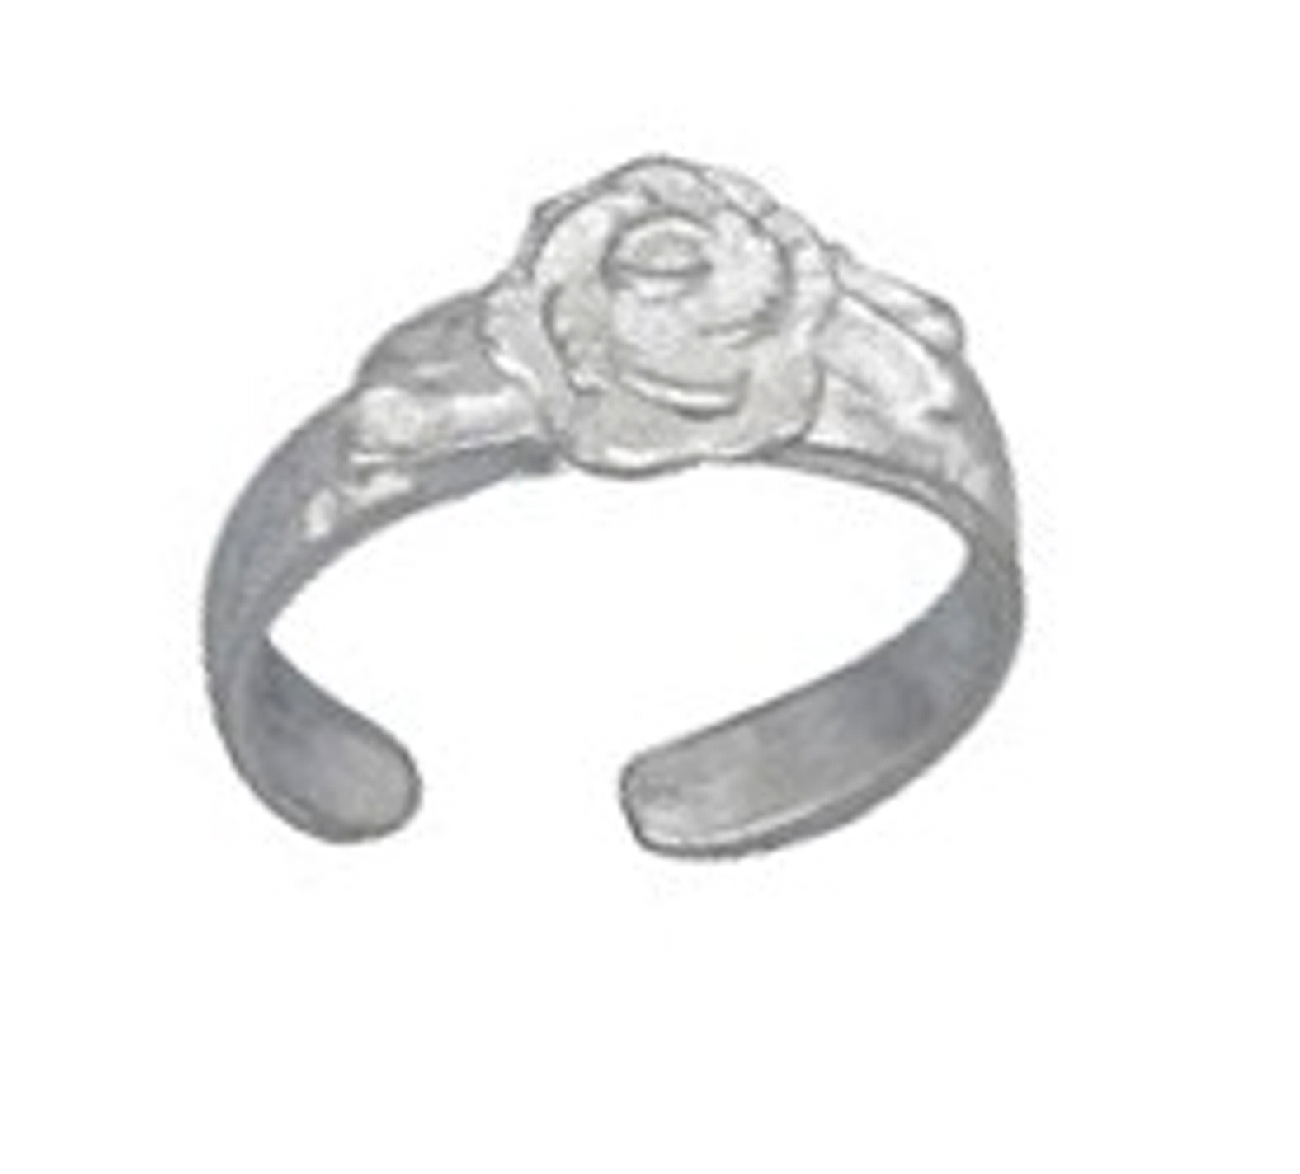 3D Blooming Rose Toe Ring